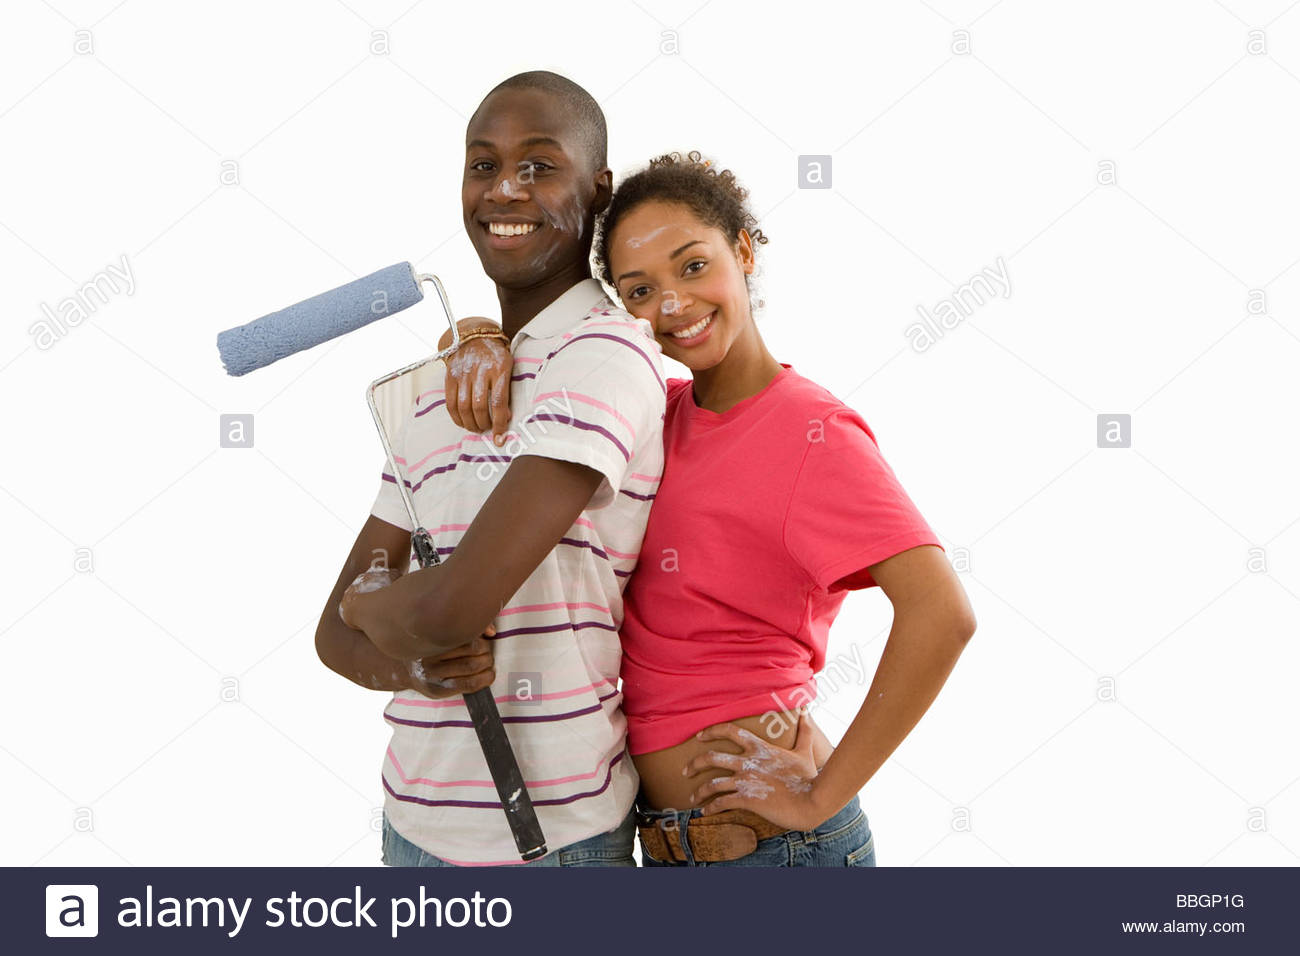 young couple home decorating man with paint roller woman embracing man smiling portrait cut out